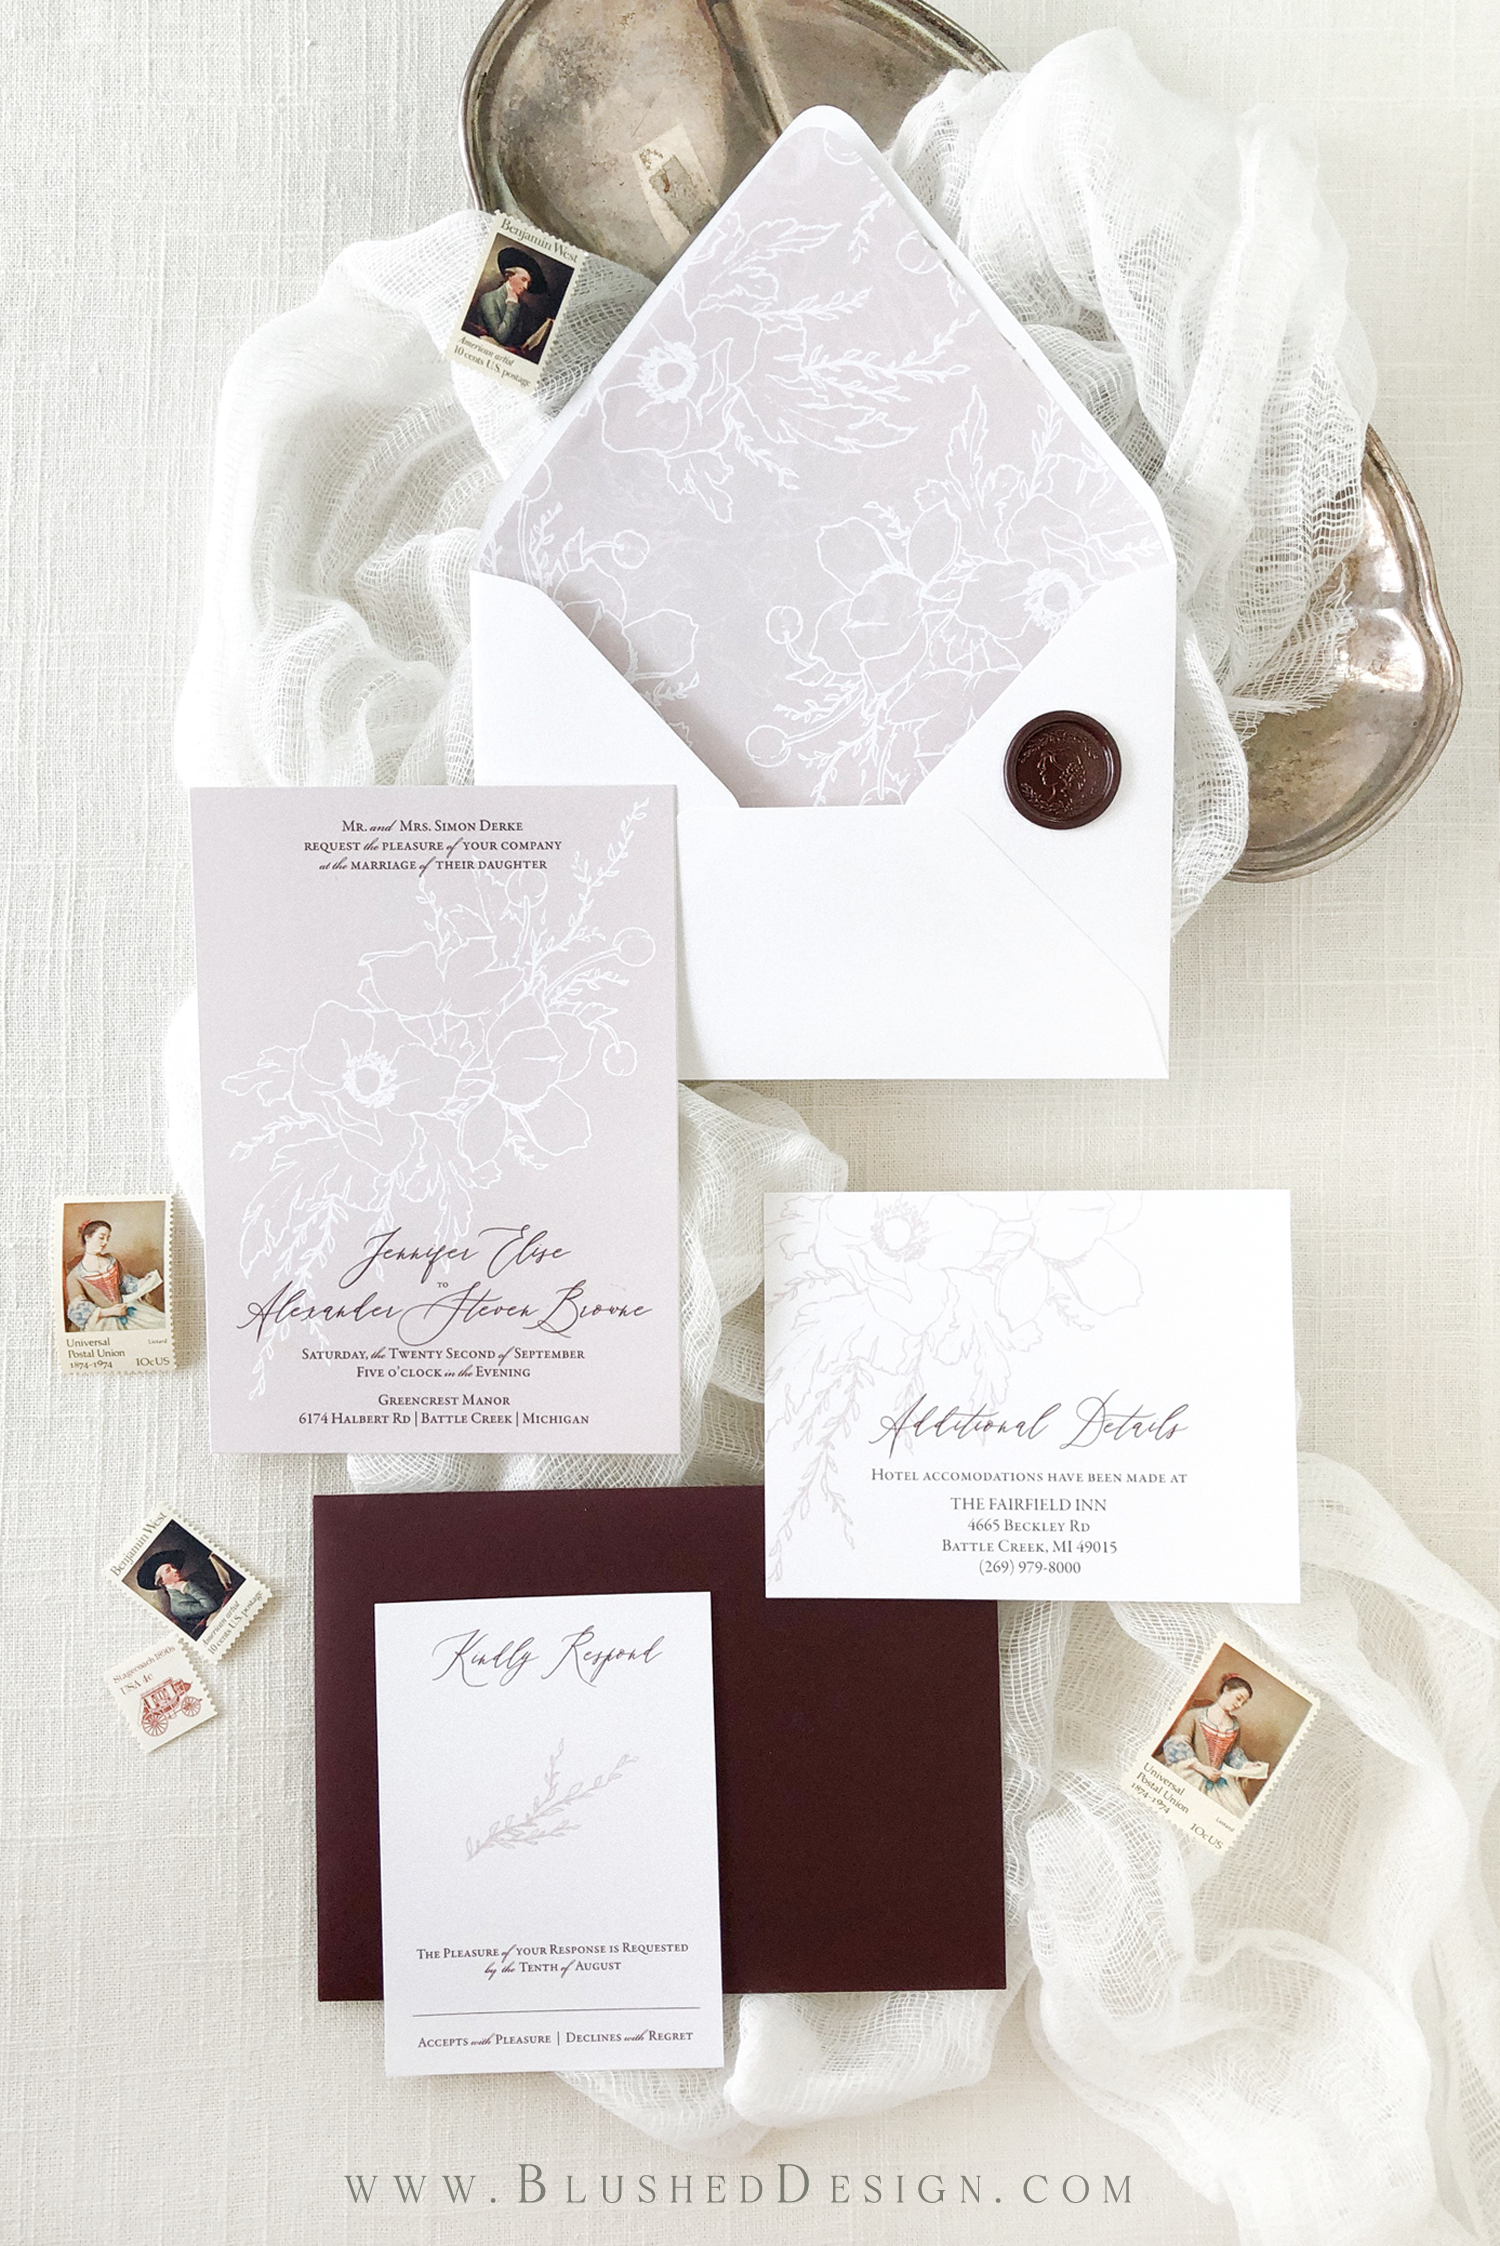 Bold modern wedding invitations with a delicate floral illustration, fully patterned envelope liner and custom wax seal.  I love the modern text lay out paired with the sketchy floral of this wedding invitation suite!  So elegant and romantic. #romanticwedding #fineartwedding #weddingstationery #weddinginvitations #weddinginspiration